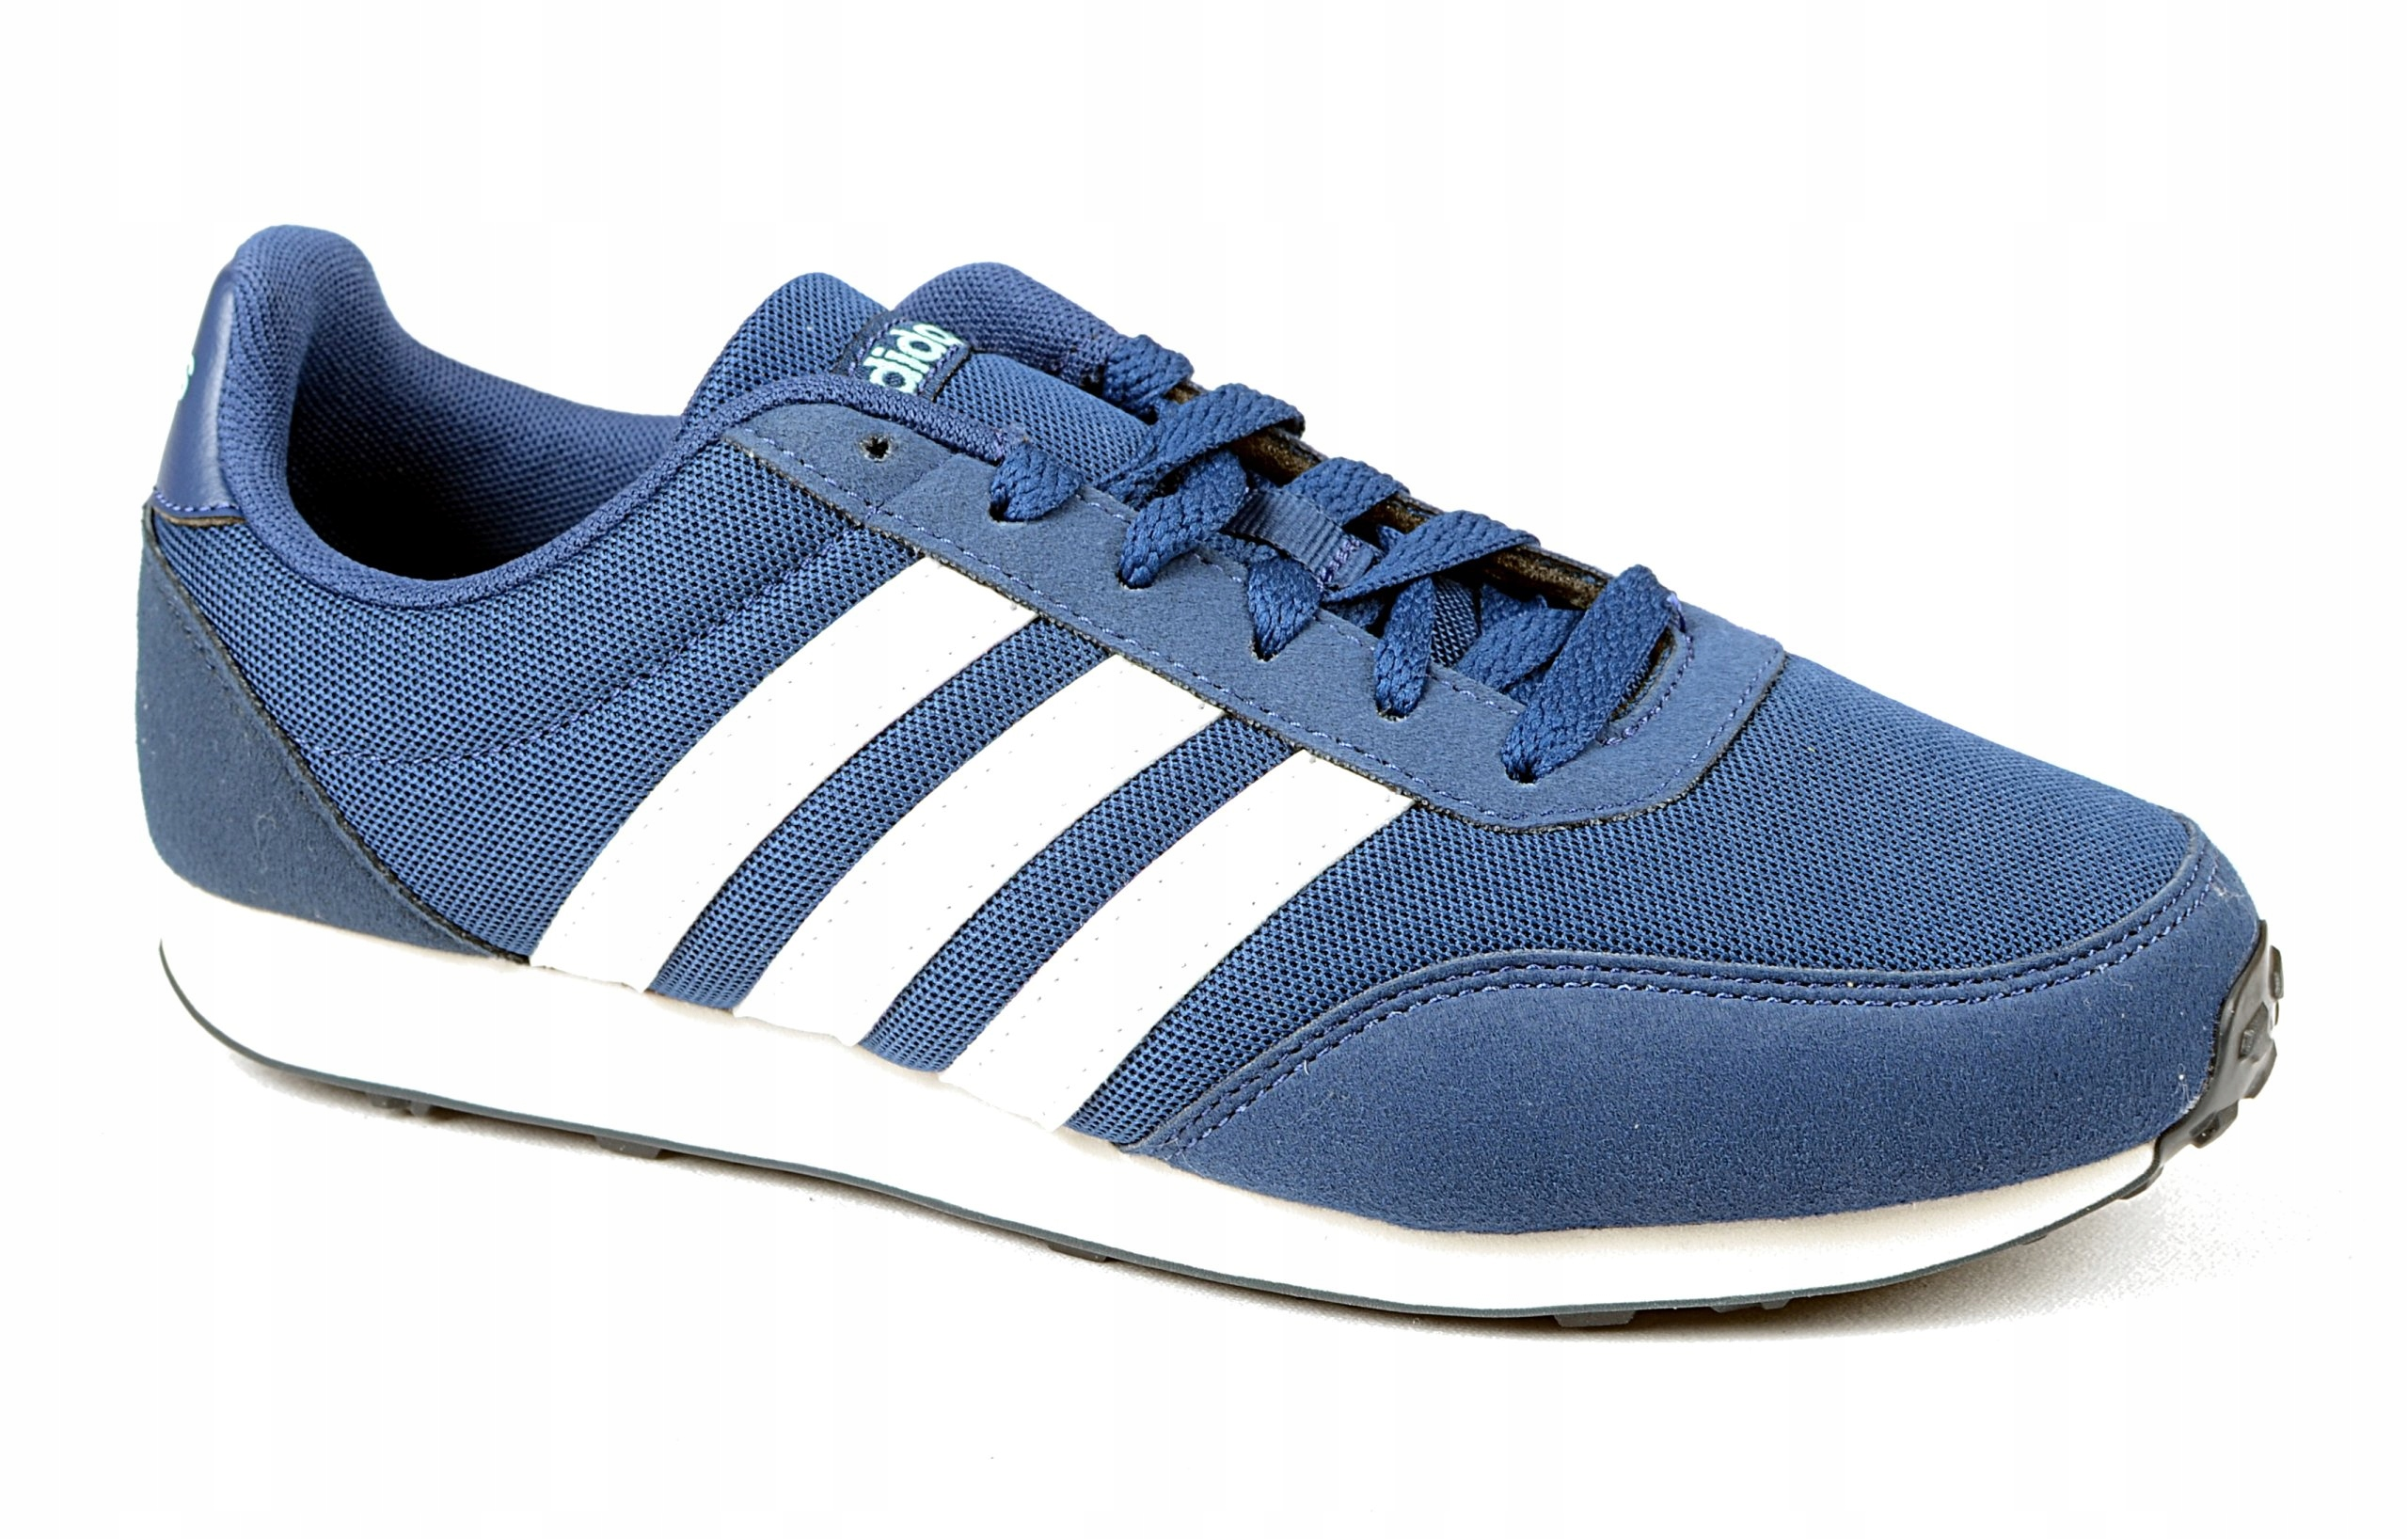 Buty Adidas V Racer 2.0 W Bc0113 36 23